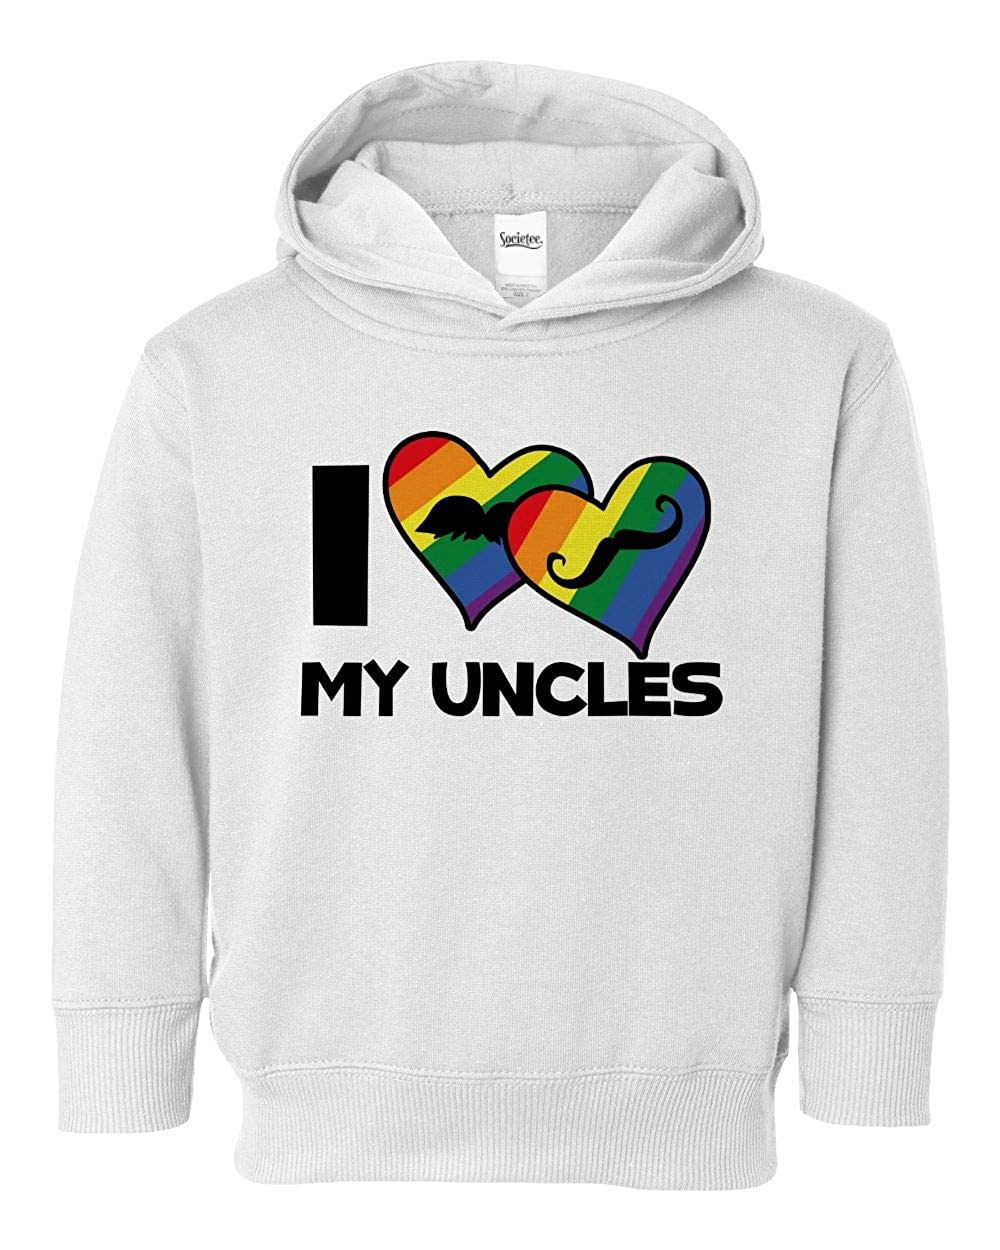 Societee I Love My Uncles Girls Boys Toddler Hooded Sweatshirt